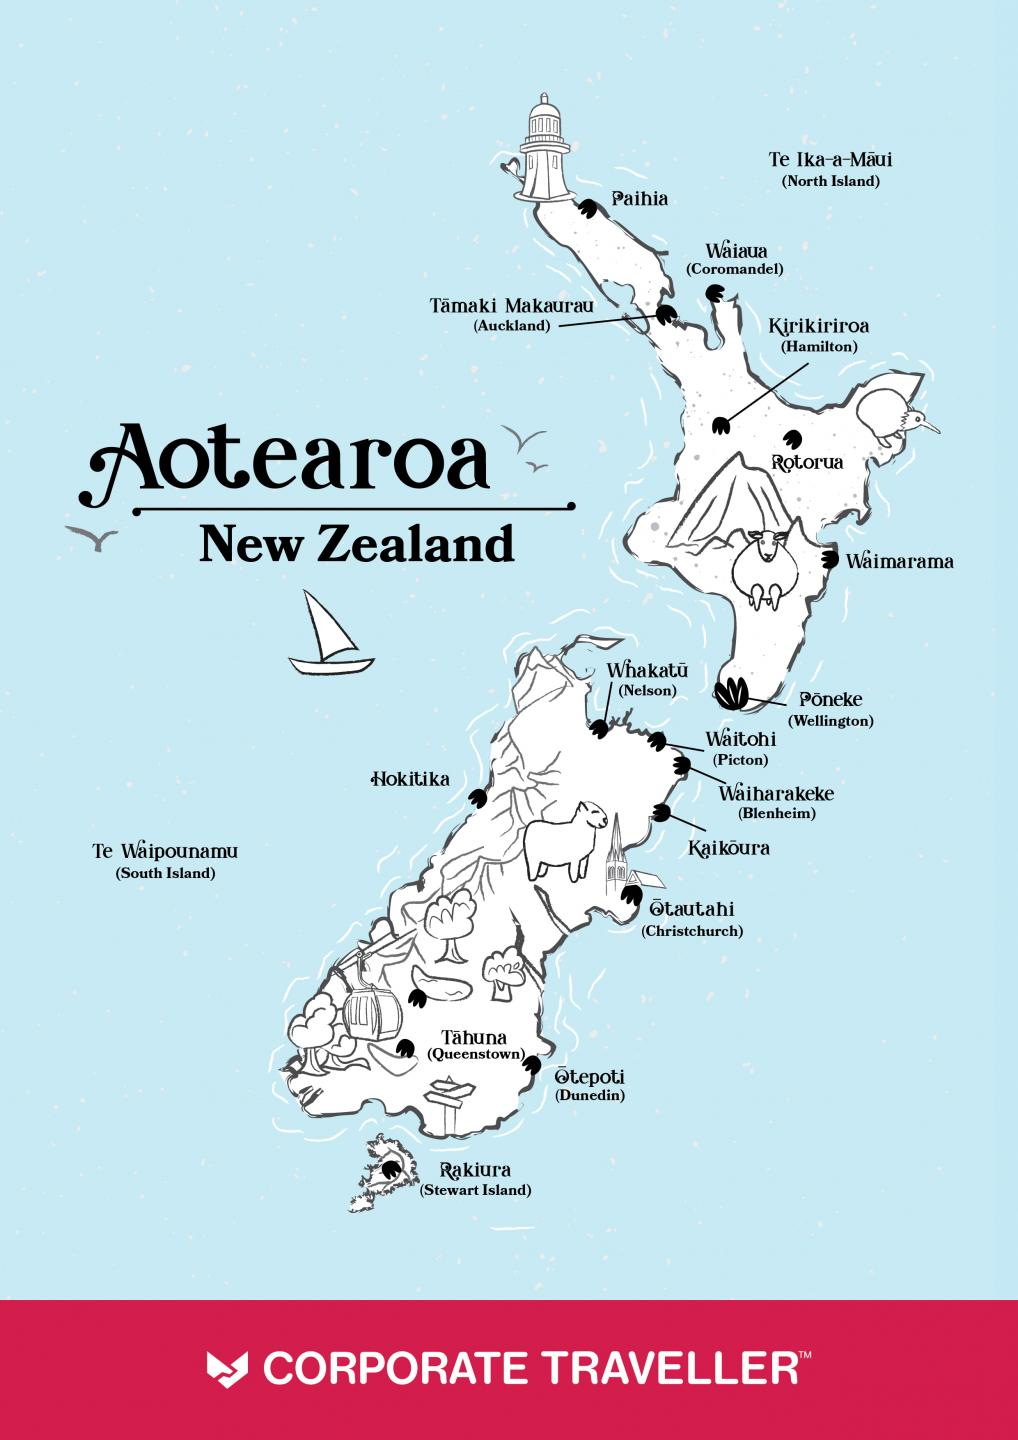 Maori Map of New Zealand